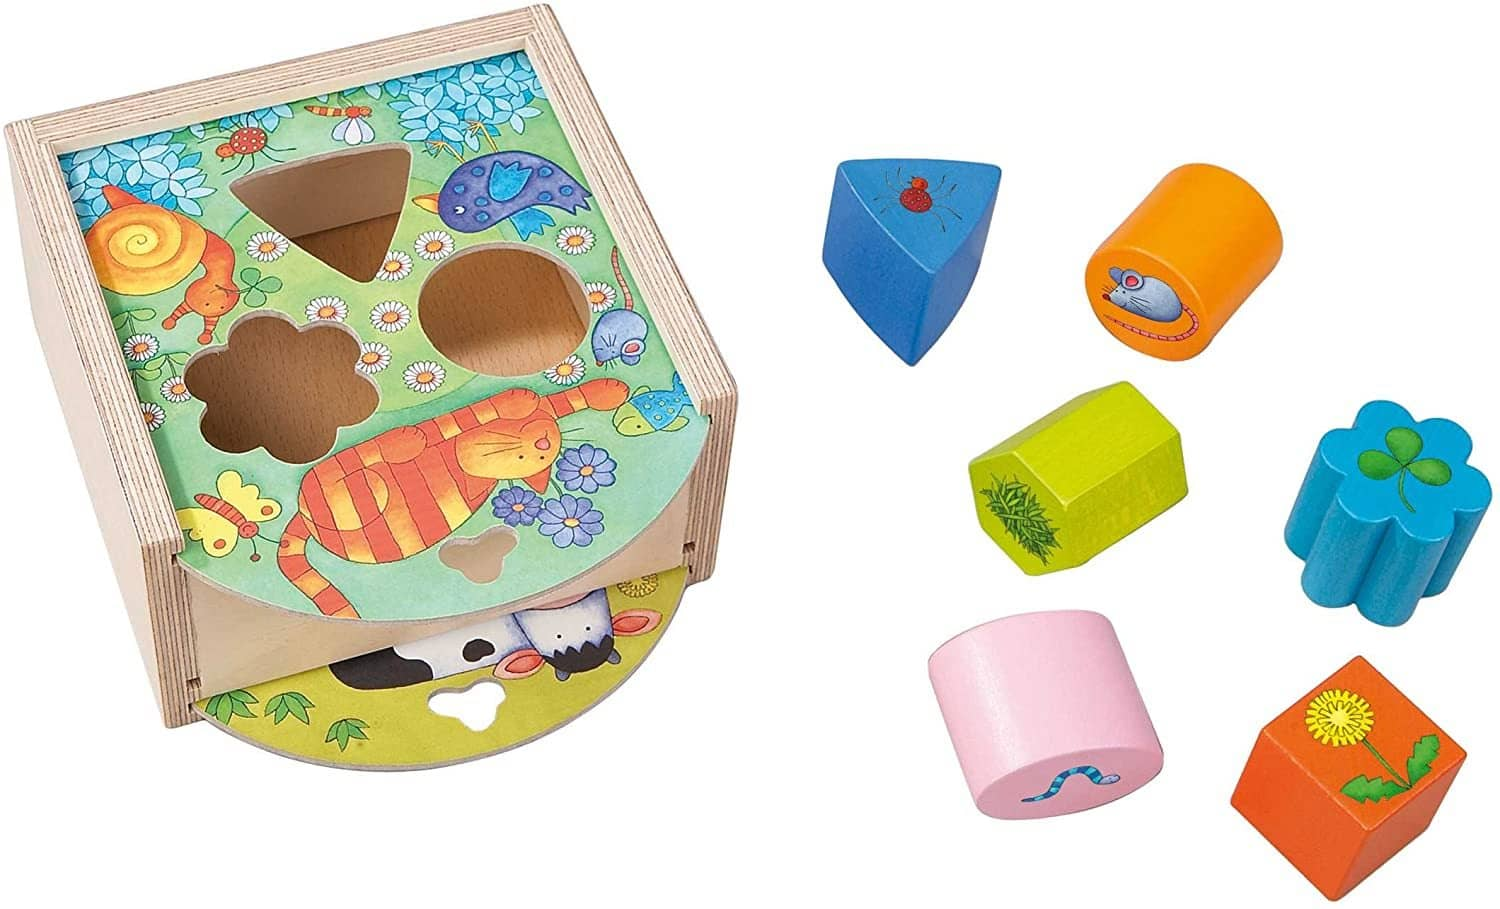 Animals Sorting Box - Wooden Shape Sorter And Matching Toy For Ages 1 And Up (Made In Germany)-Kidding Around NYC